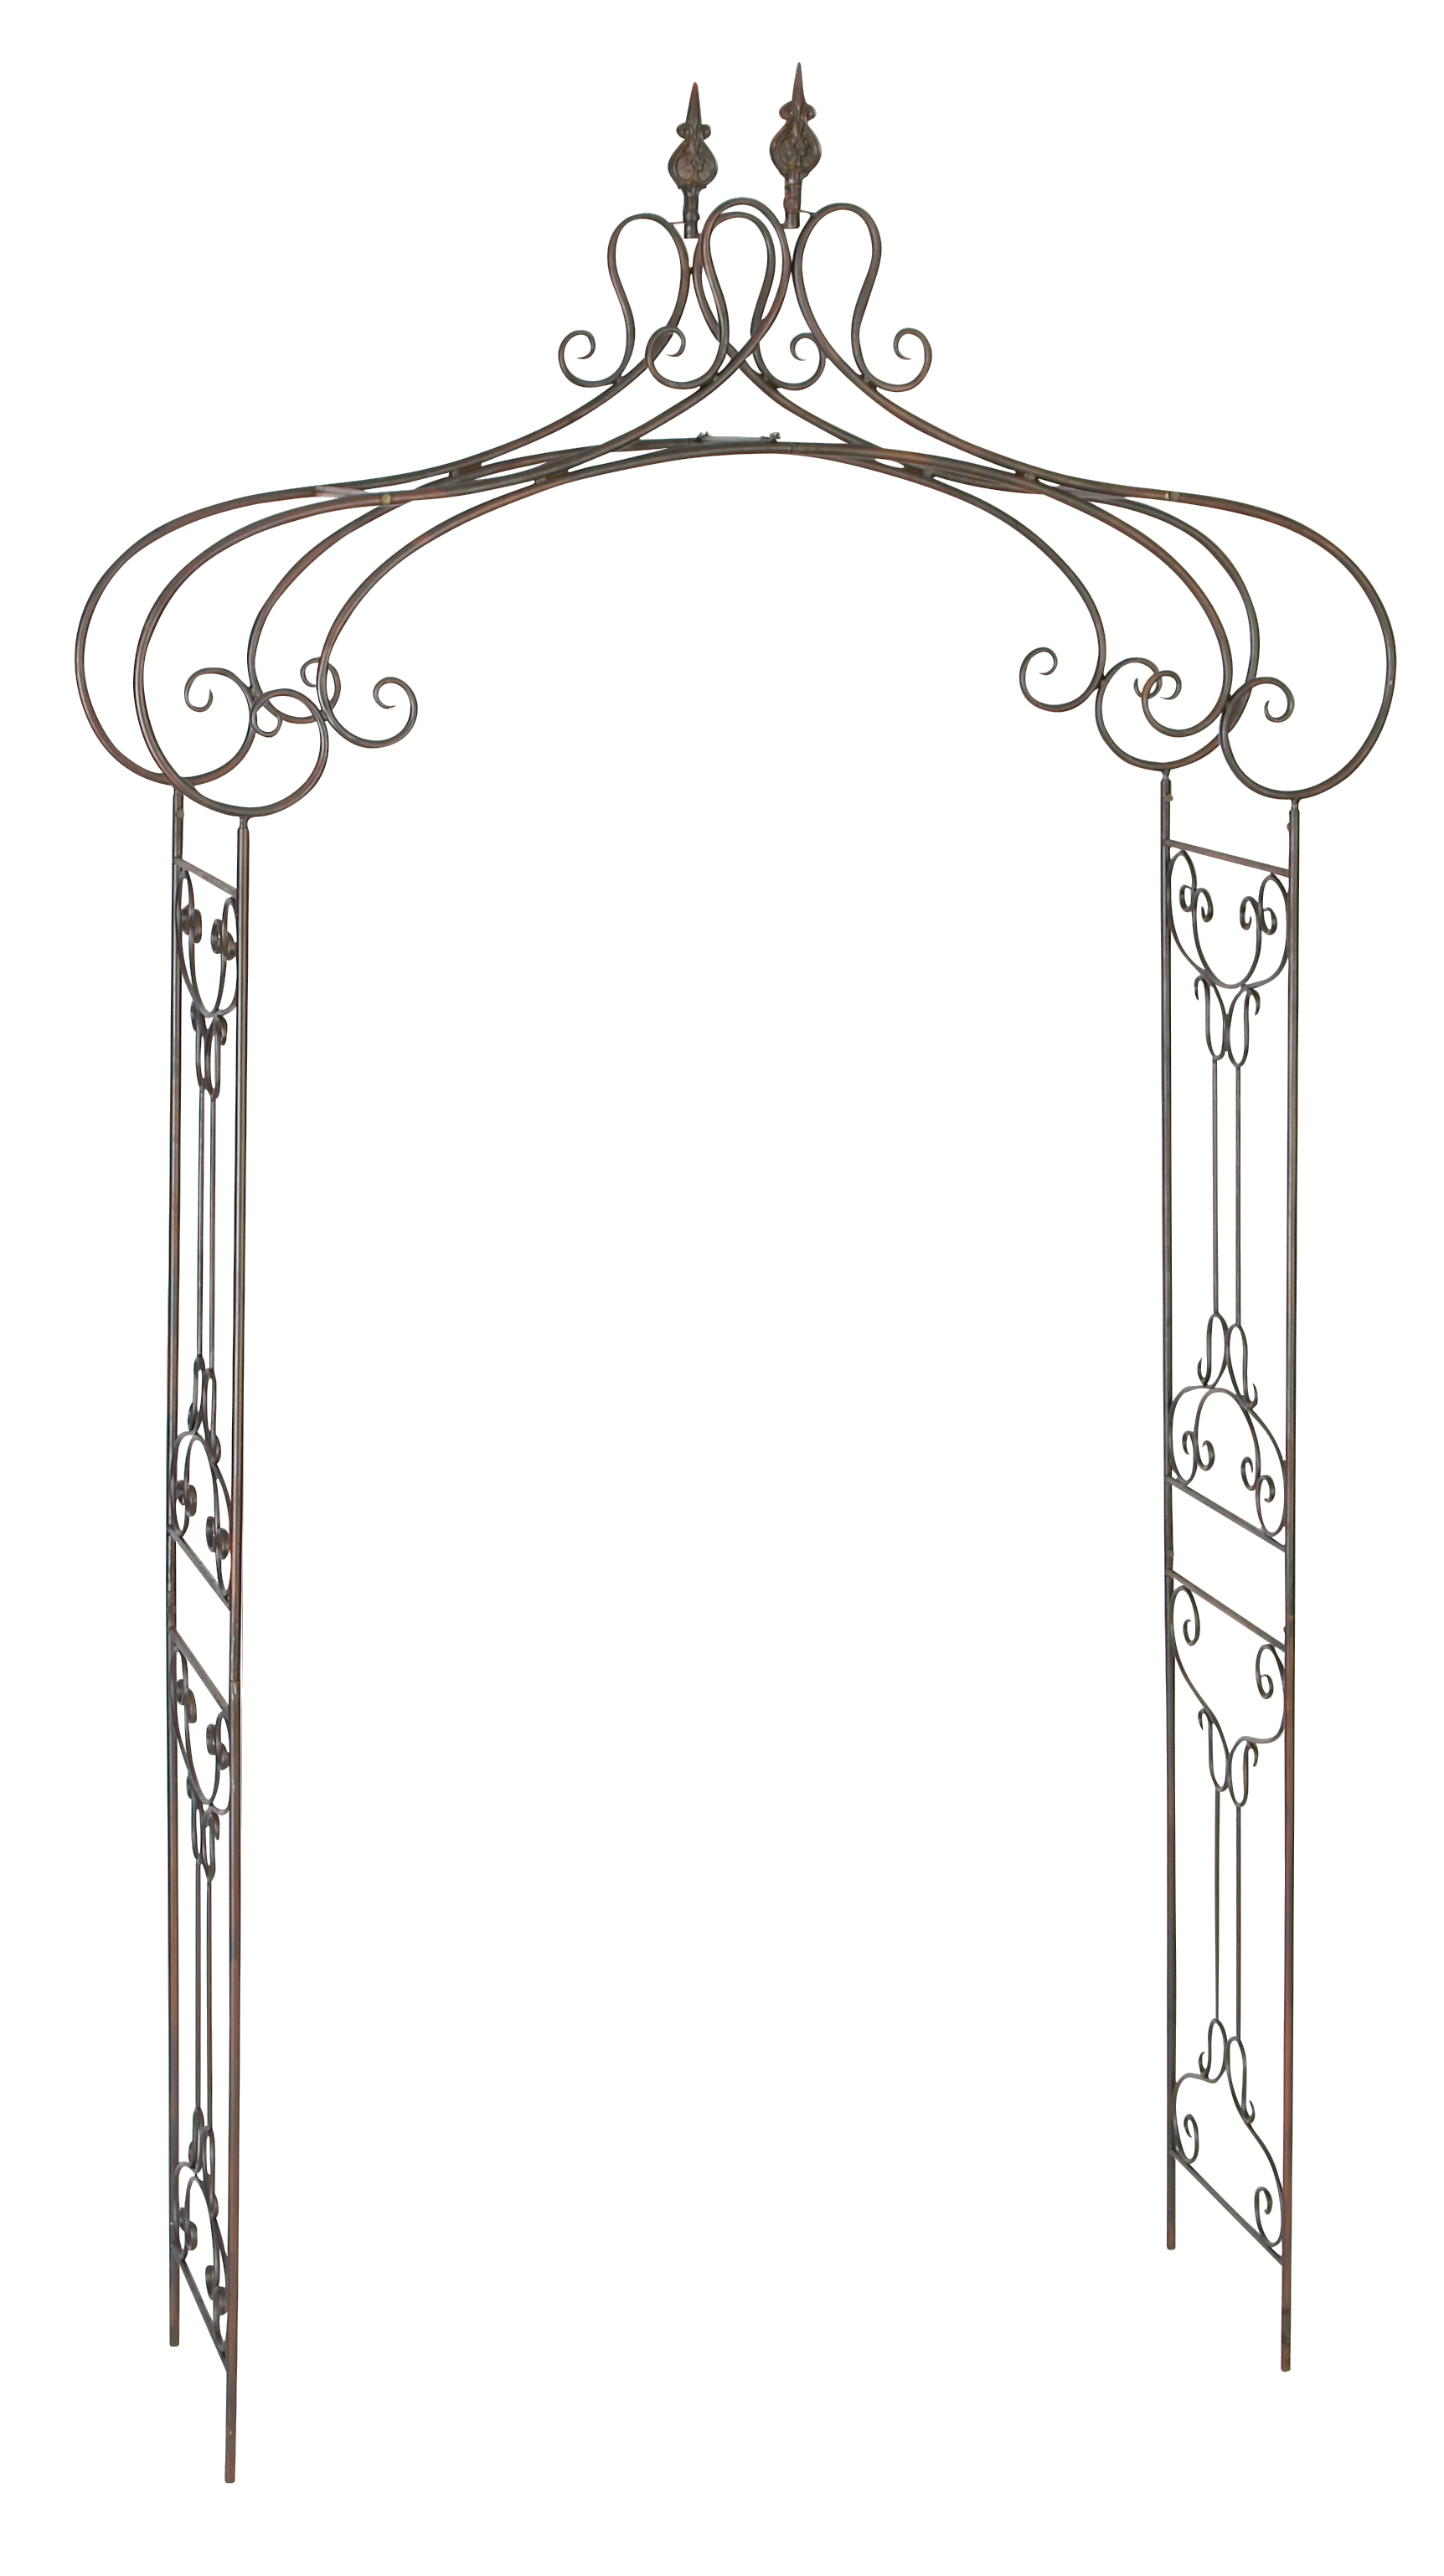 Decmode 95 Inch Traditional Wrought Iron Scrollwork Garden